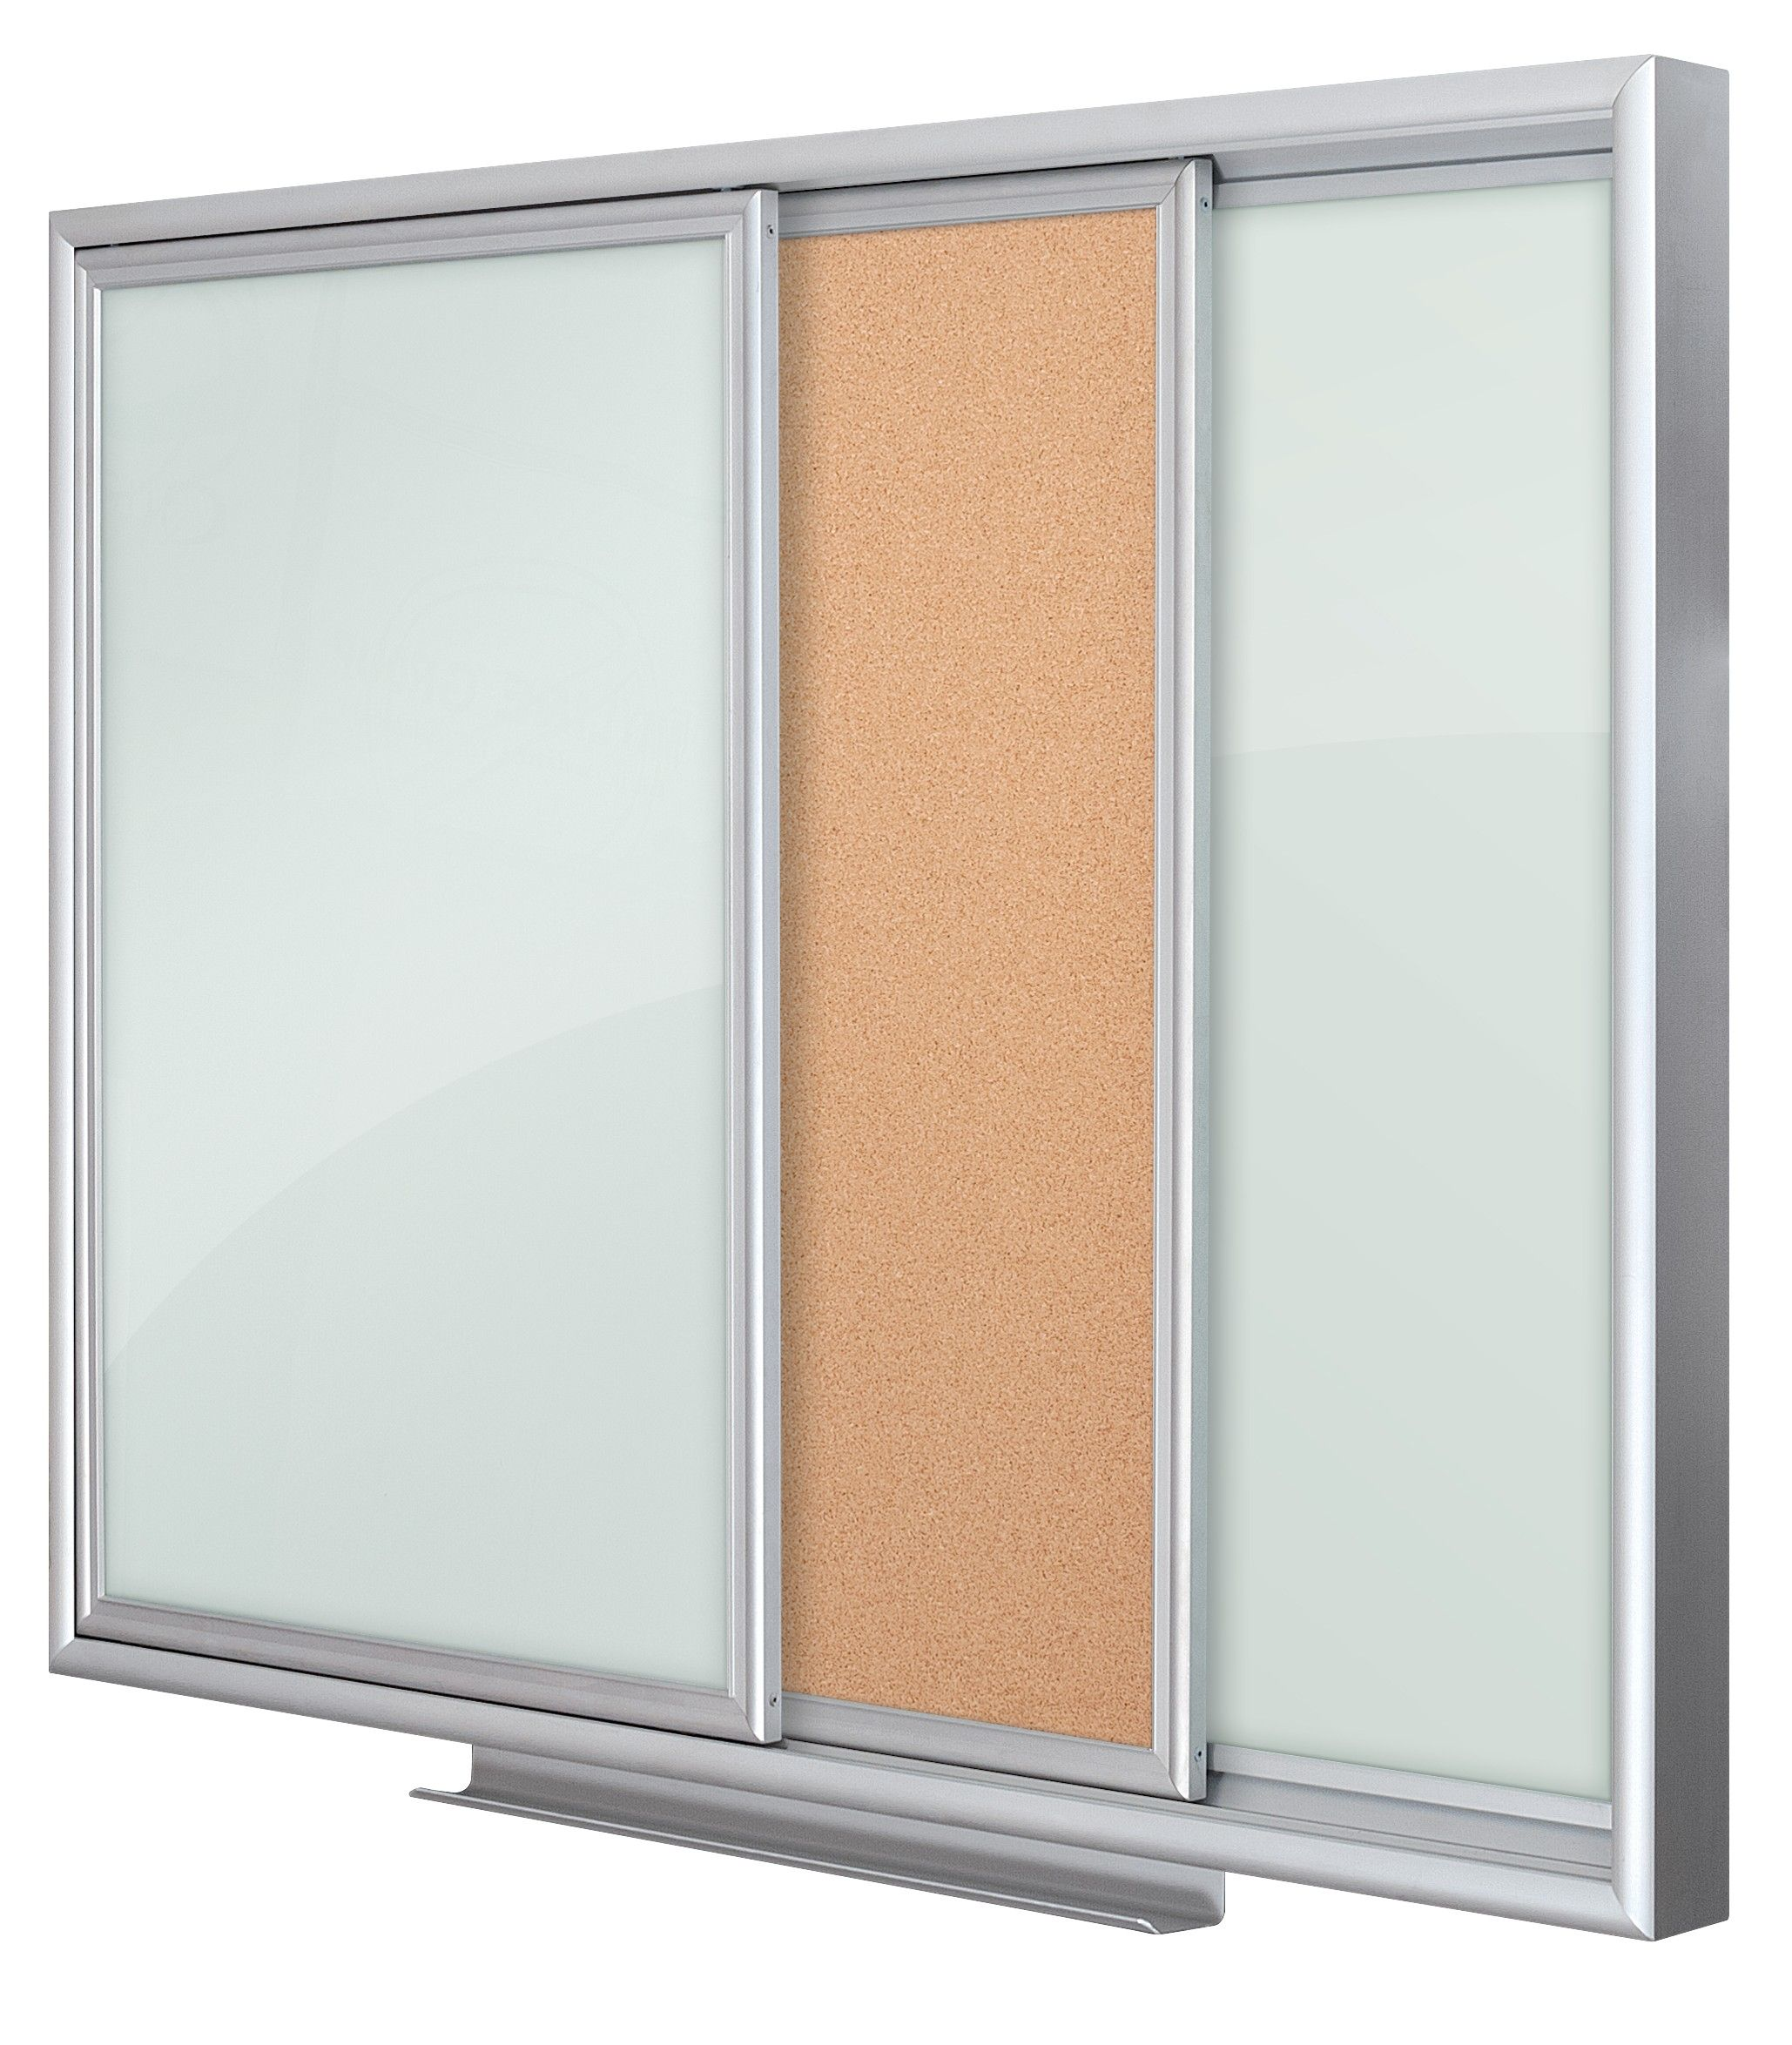 Sliding Cork Board | , Insight, Board, Sliding Glass Cabinet, Wall Cabinet,